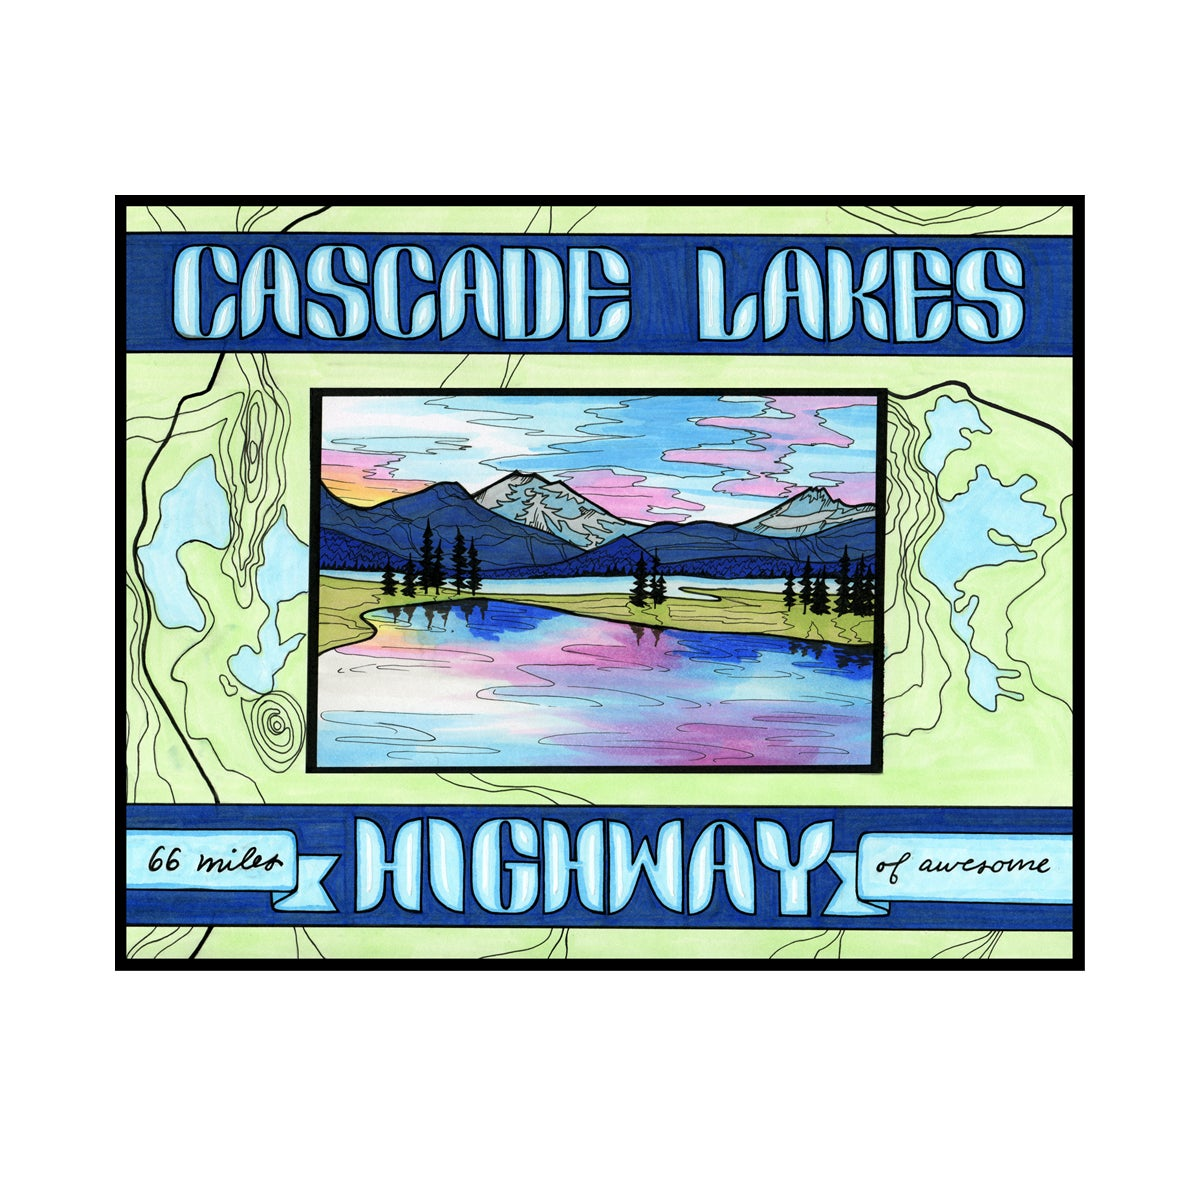 Image of Cascade Lakes Highway print 8x10""